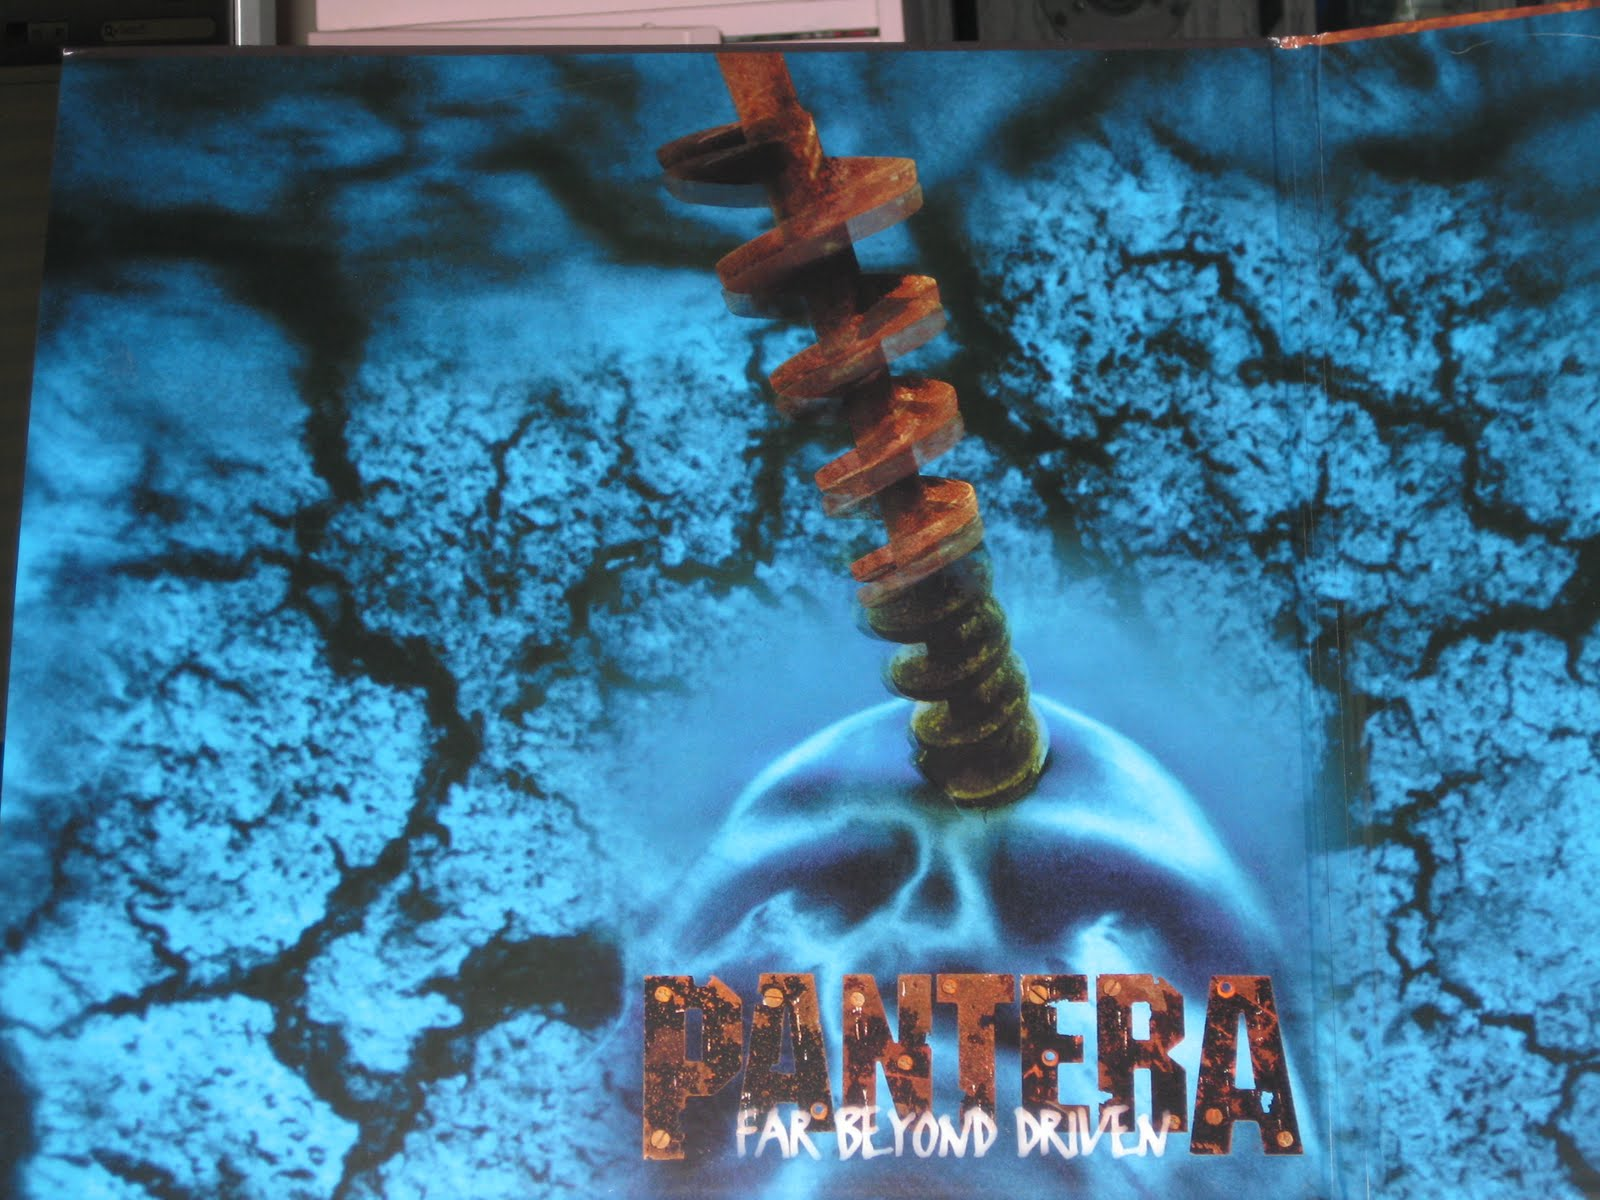 pantera far beyond driven cover - photo #8